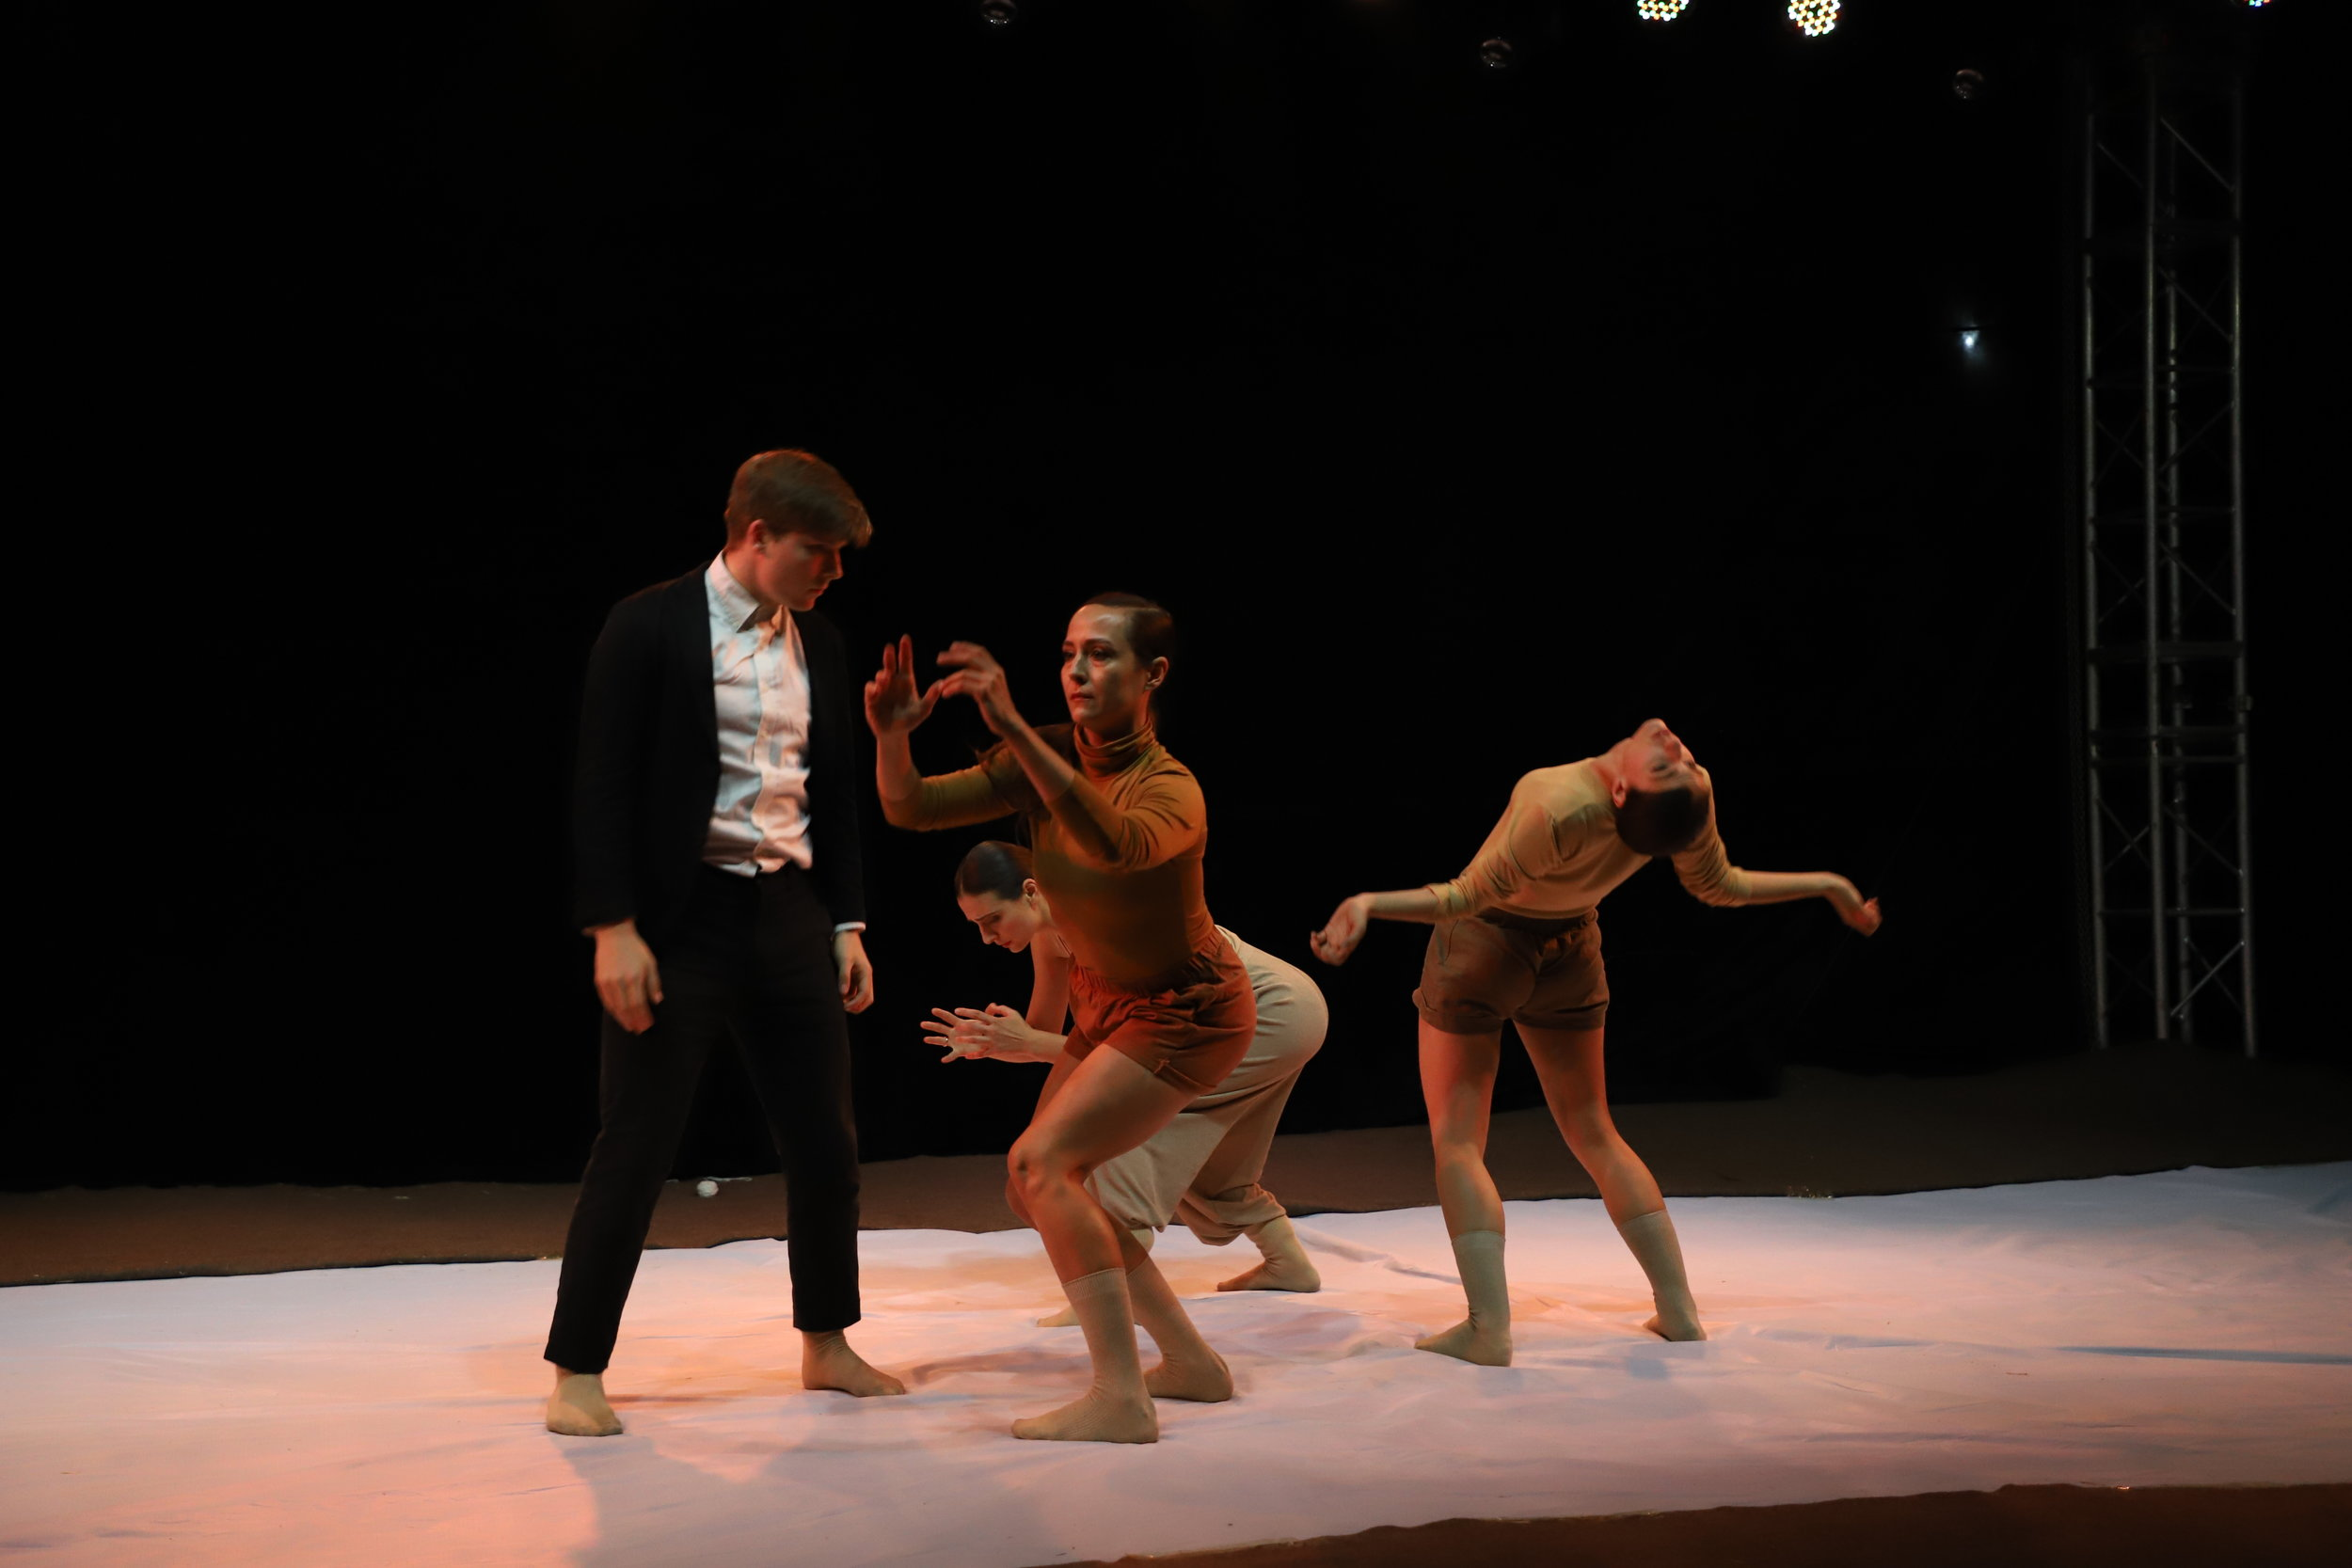 SLATE in at Laiwu International Theater Festival (Fangyu Village), performing 'Why?'2018